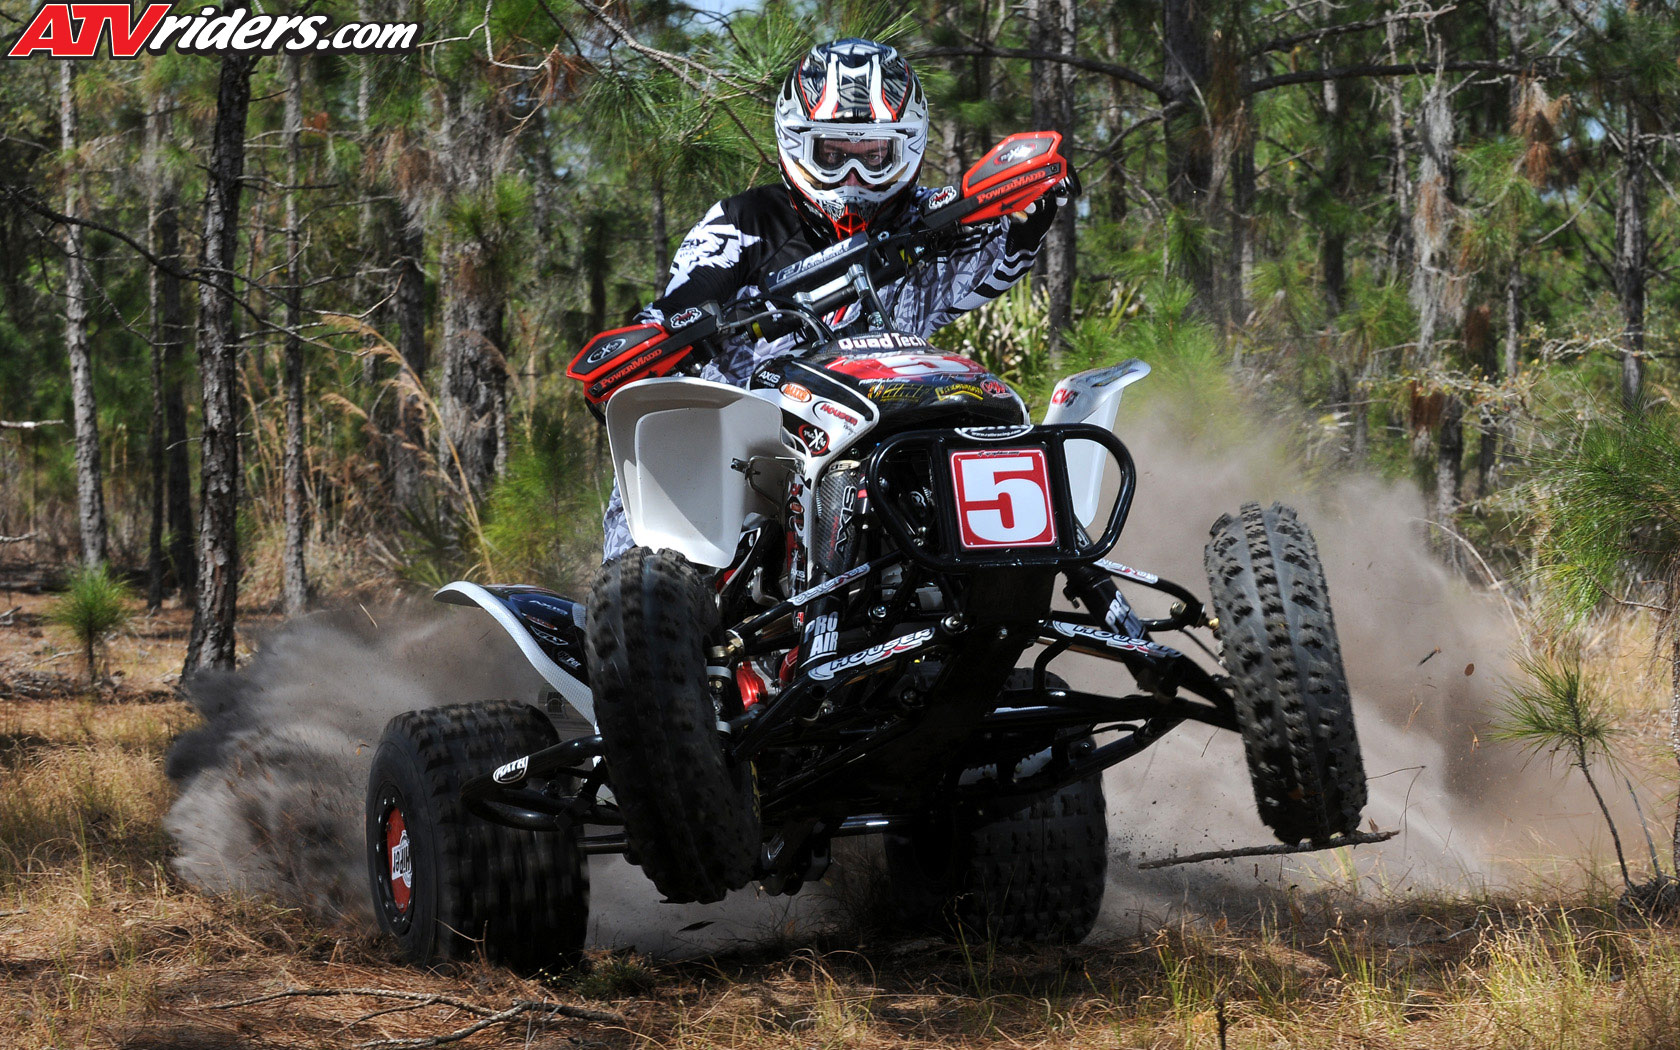 Honda 450R   Wednesday Wallpapers   Weekly ATV UTV Desktop 1680x1050